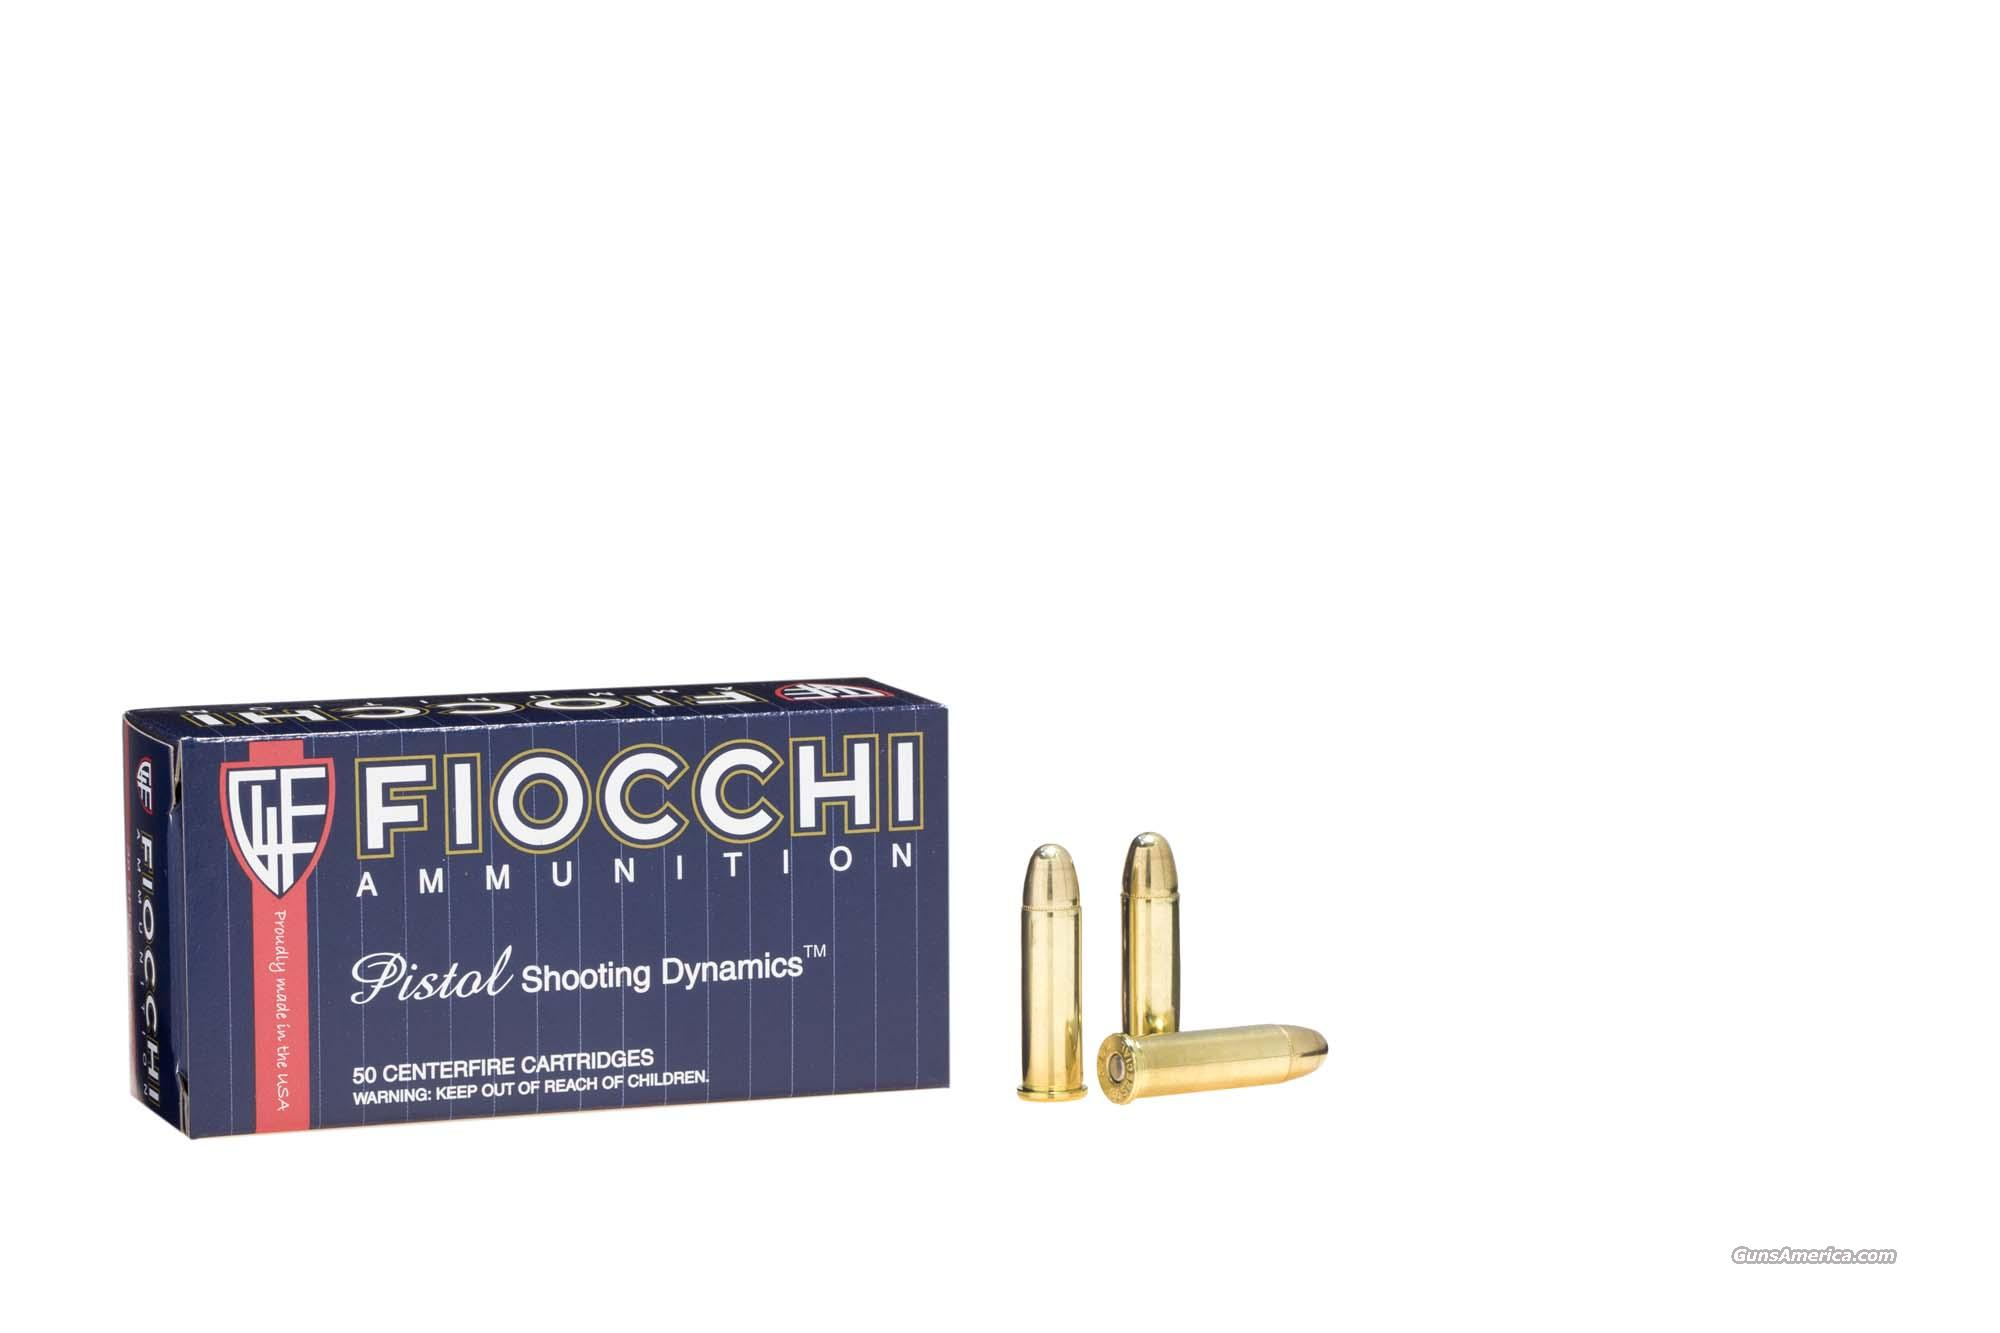 FIOCCHI 38 Special 130 gr. FMJ - 1000 Rounds - New Brass Ammo   Non-Guns > Ammunition